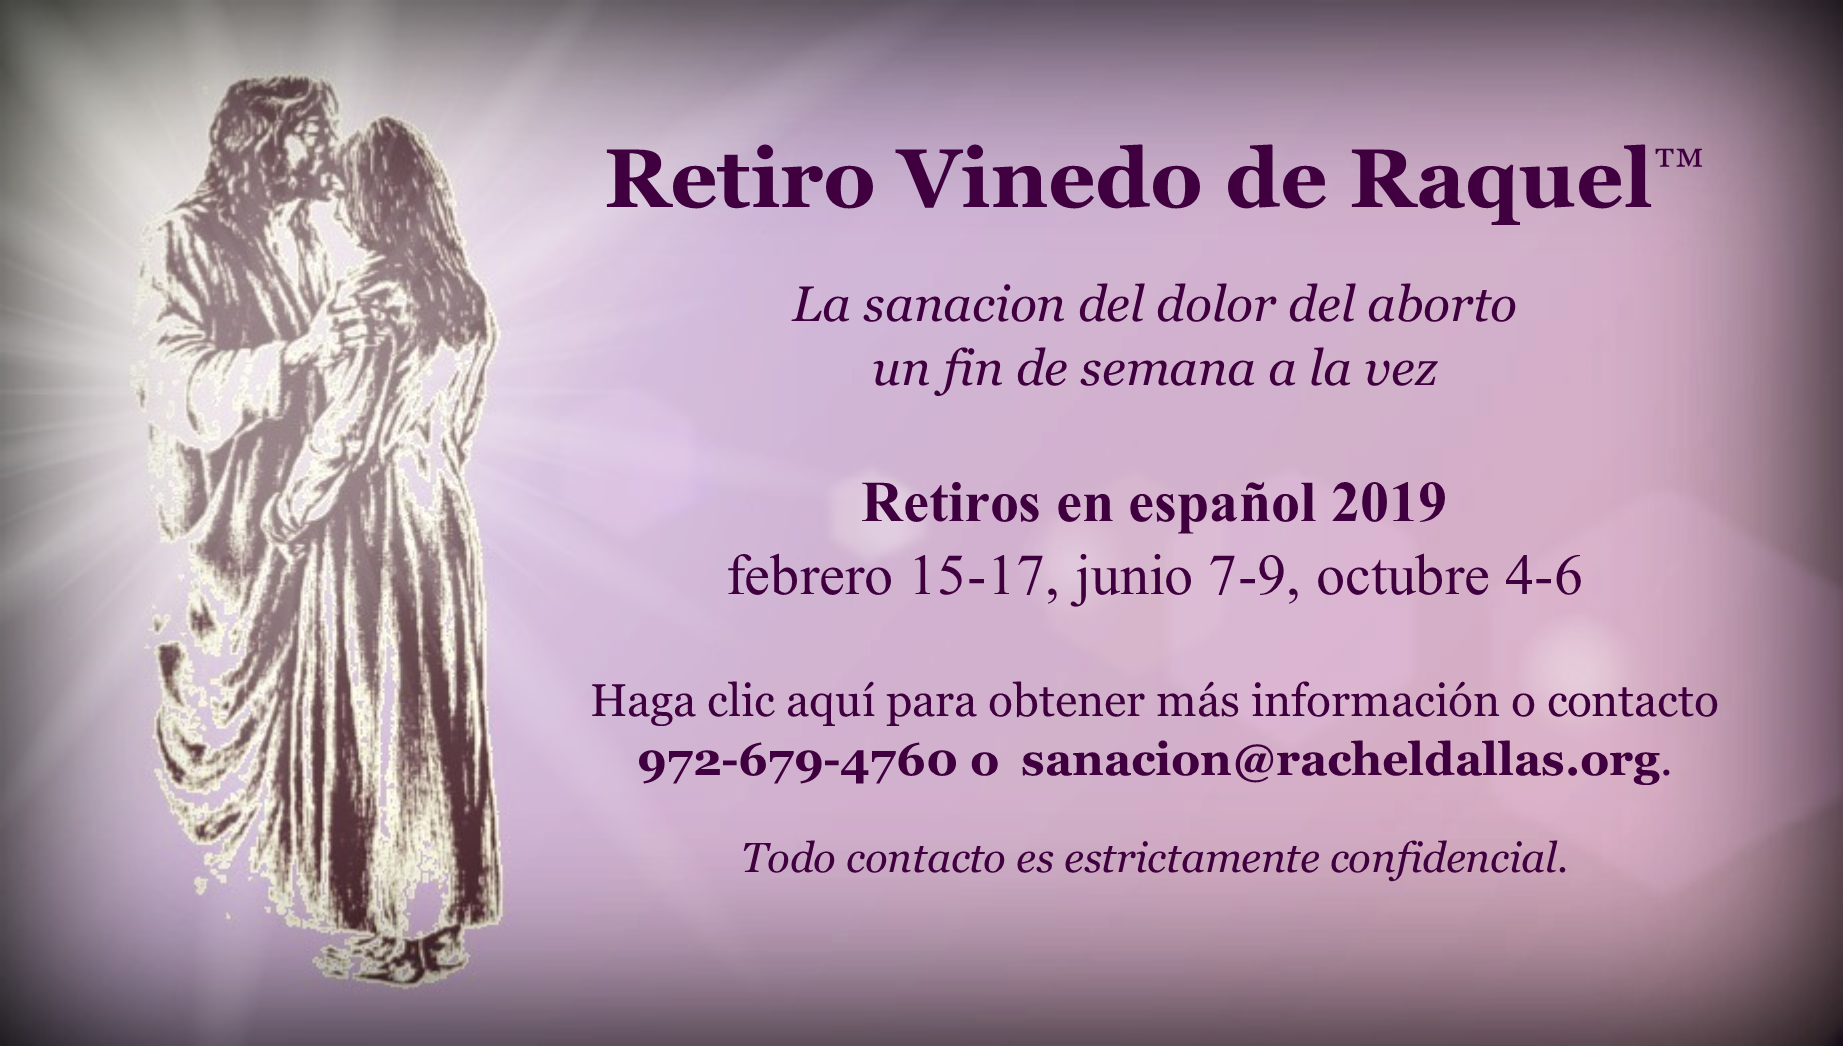 RVR_2019_Homepage_Ad_Spanish.png